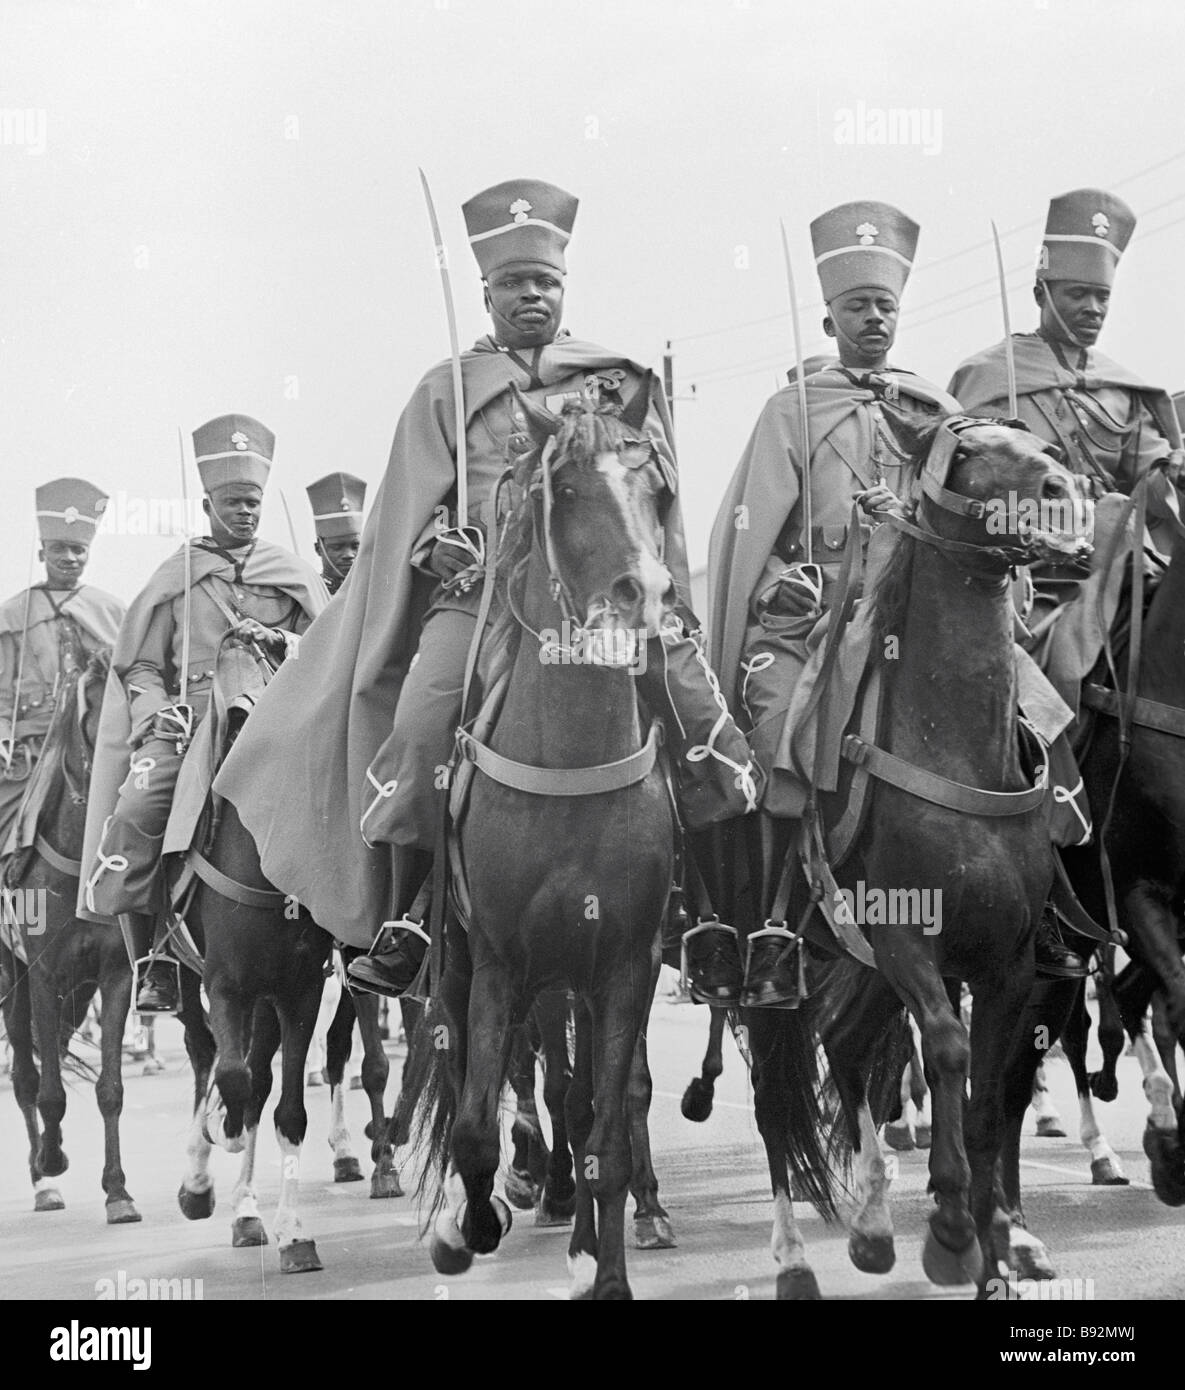 Mounted guard during military parade in Senegal - Stock Image